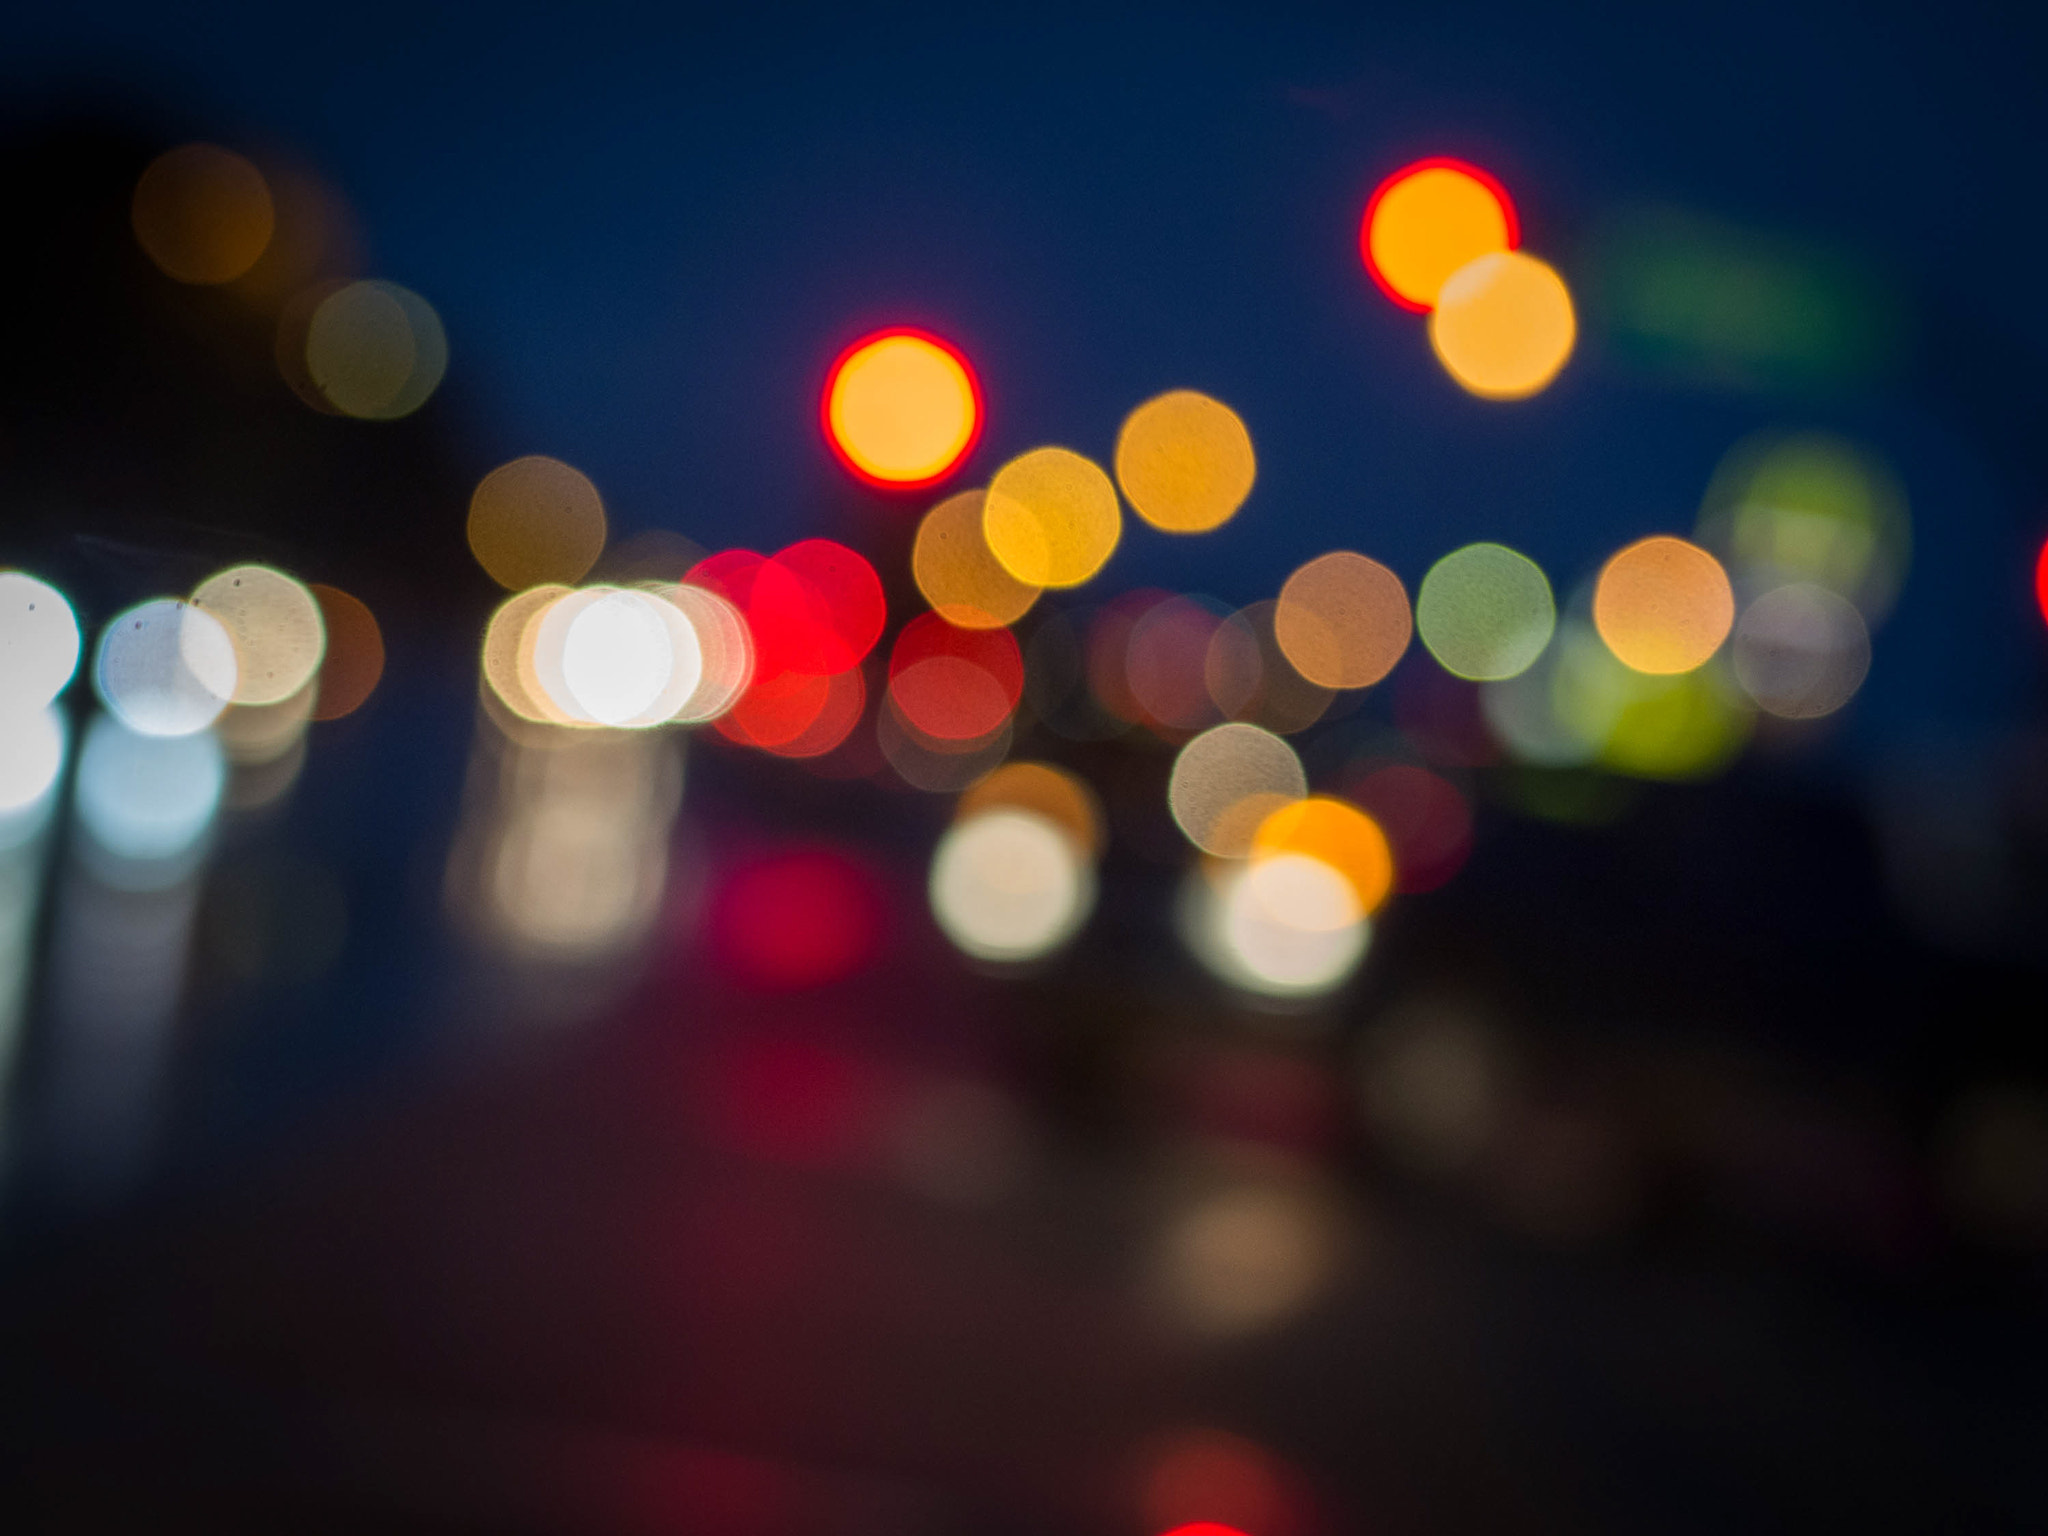 Photograph Only Bokeh by Paul Howard on 500px